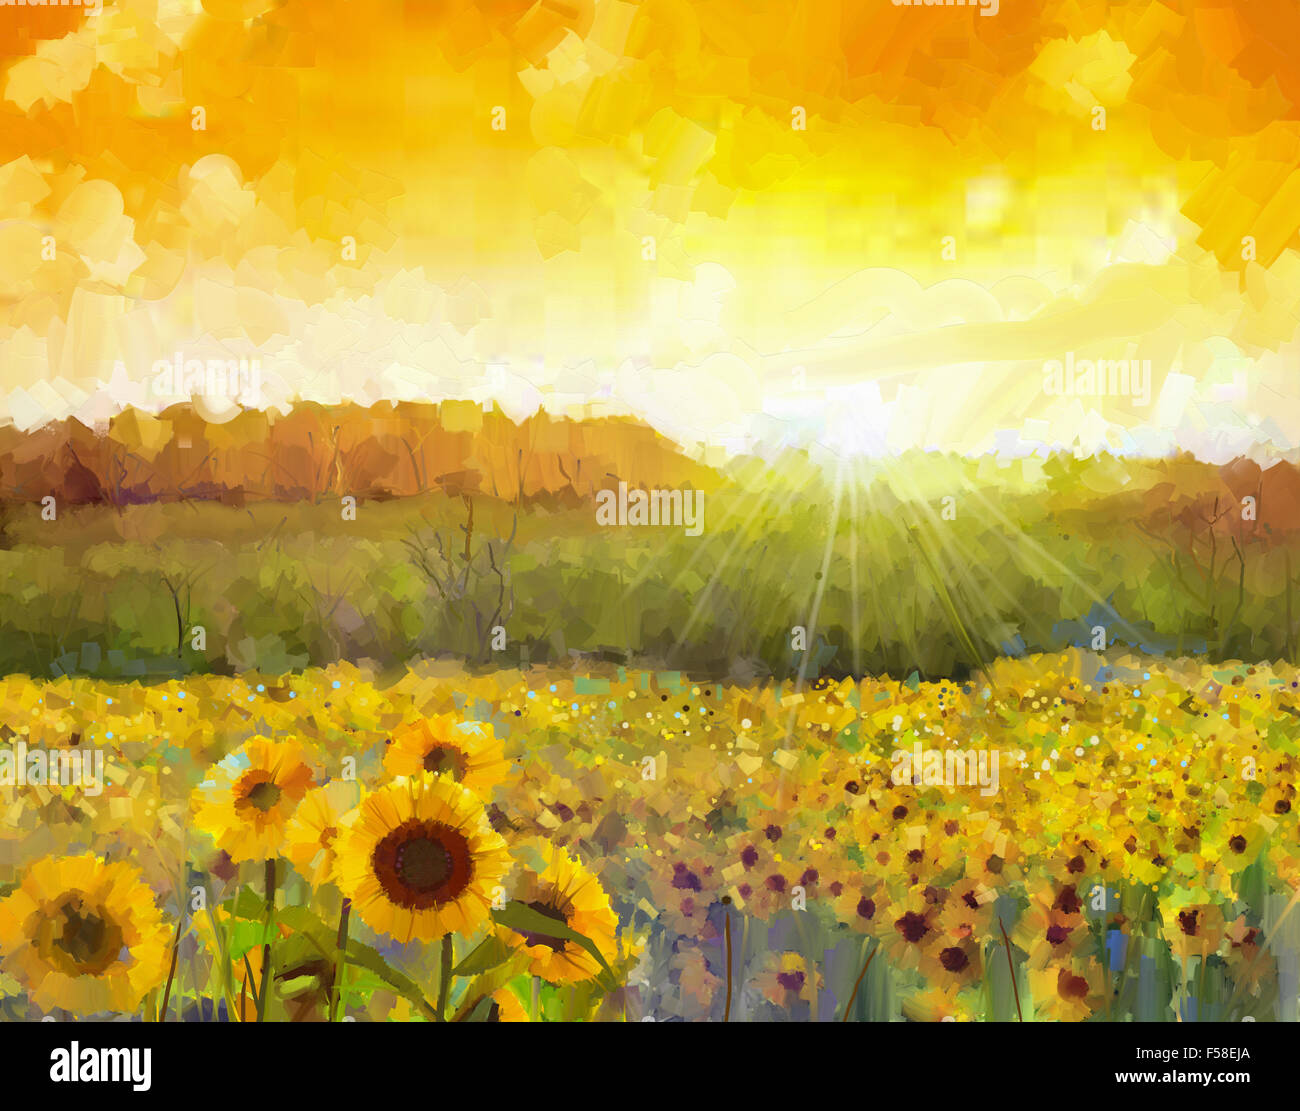 Sunflower flowers blossom. Oil painting of a rural sunset landscape with a golden sunflower field - Stock Image